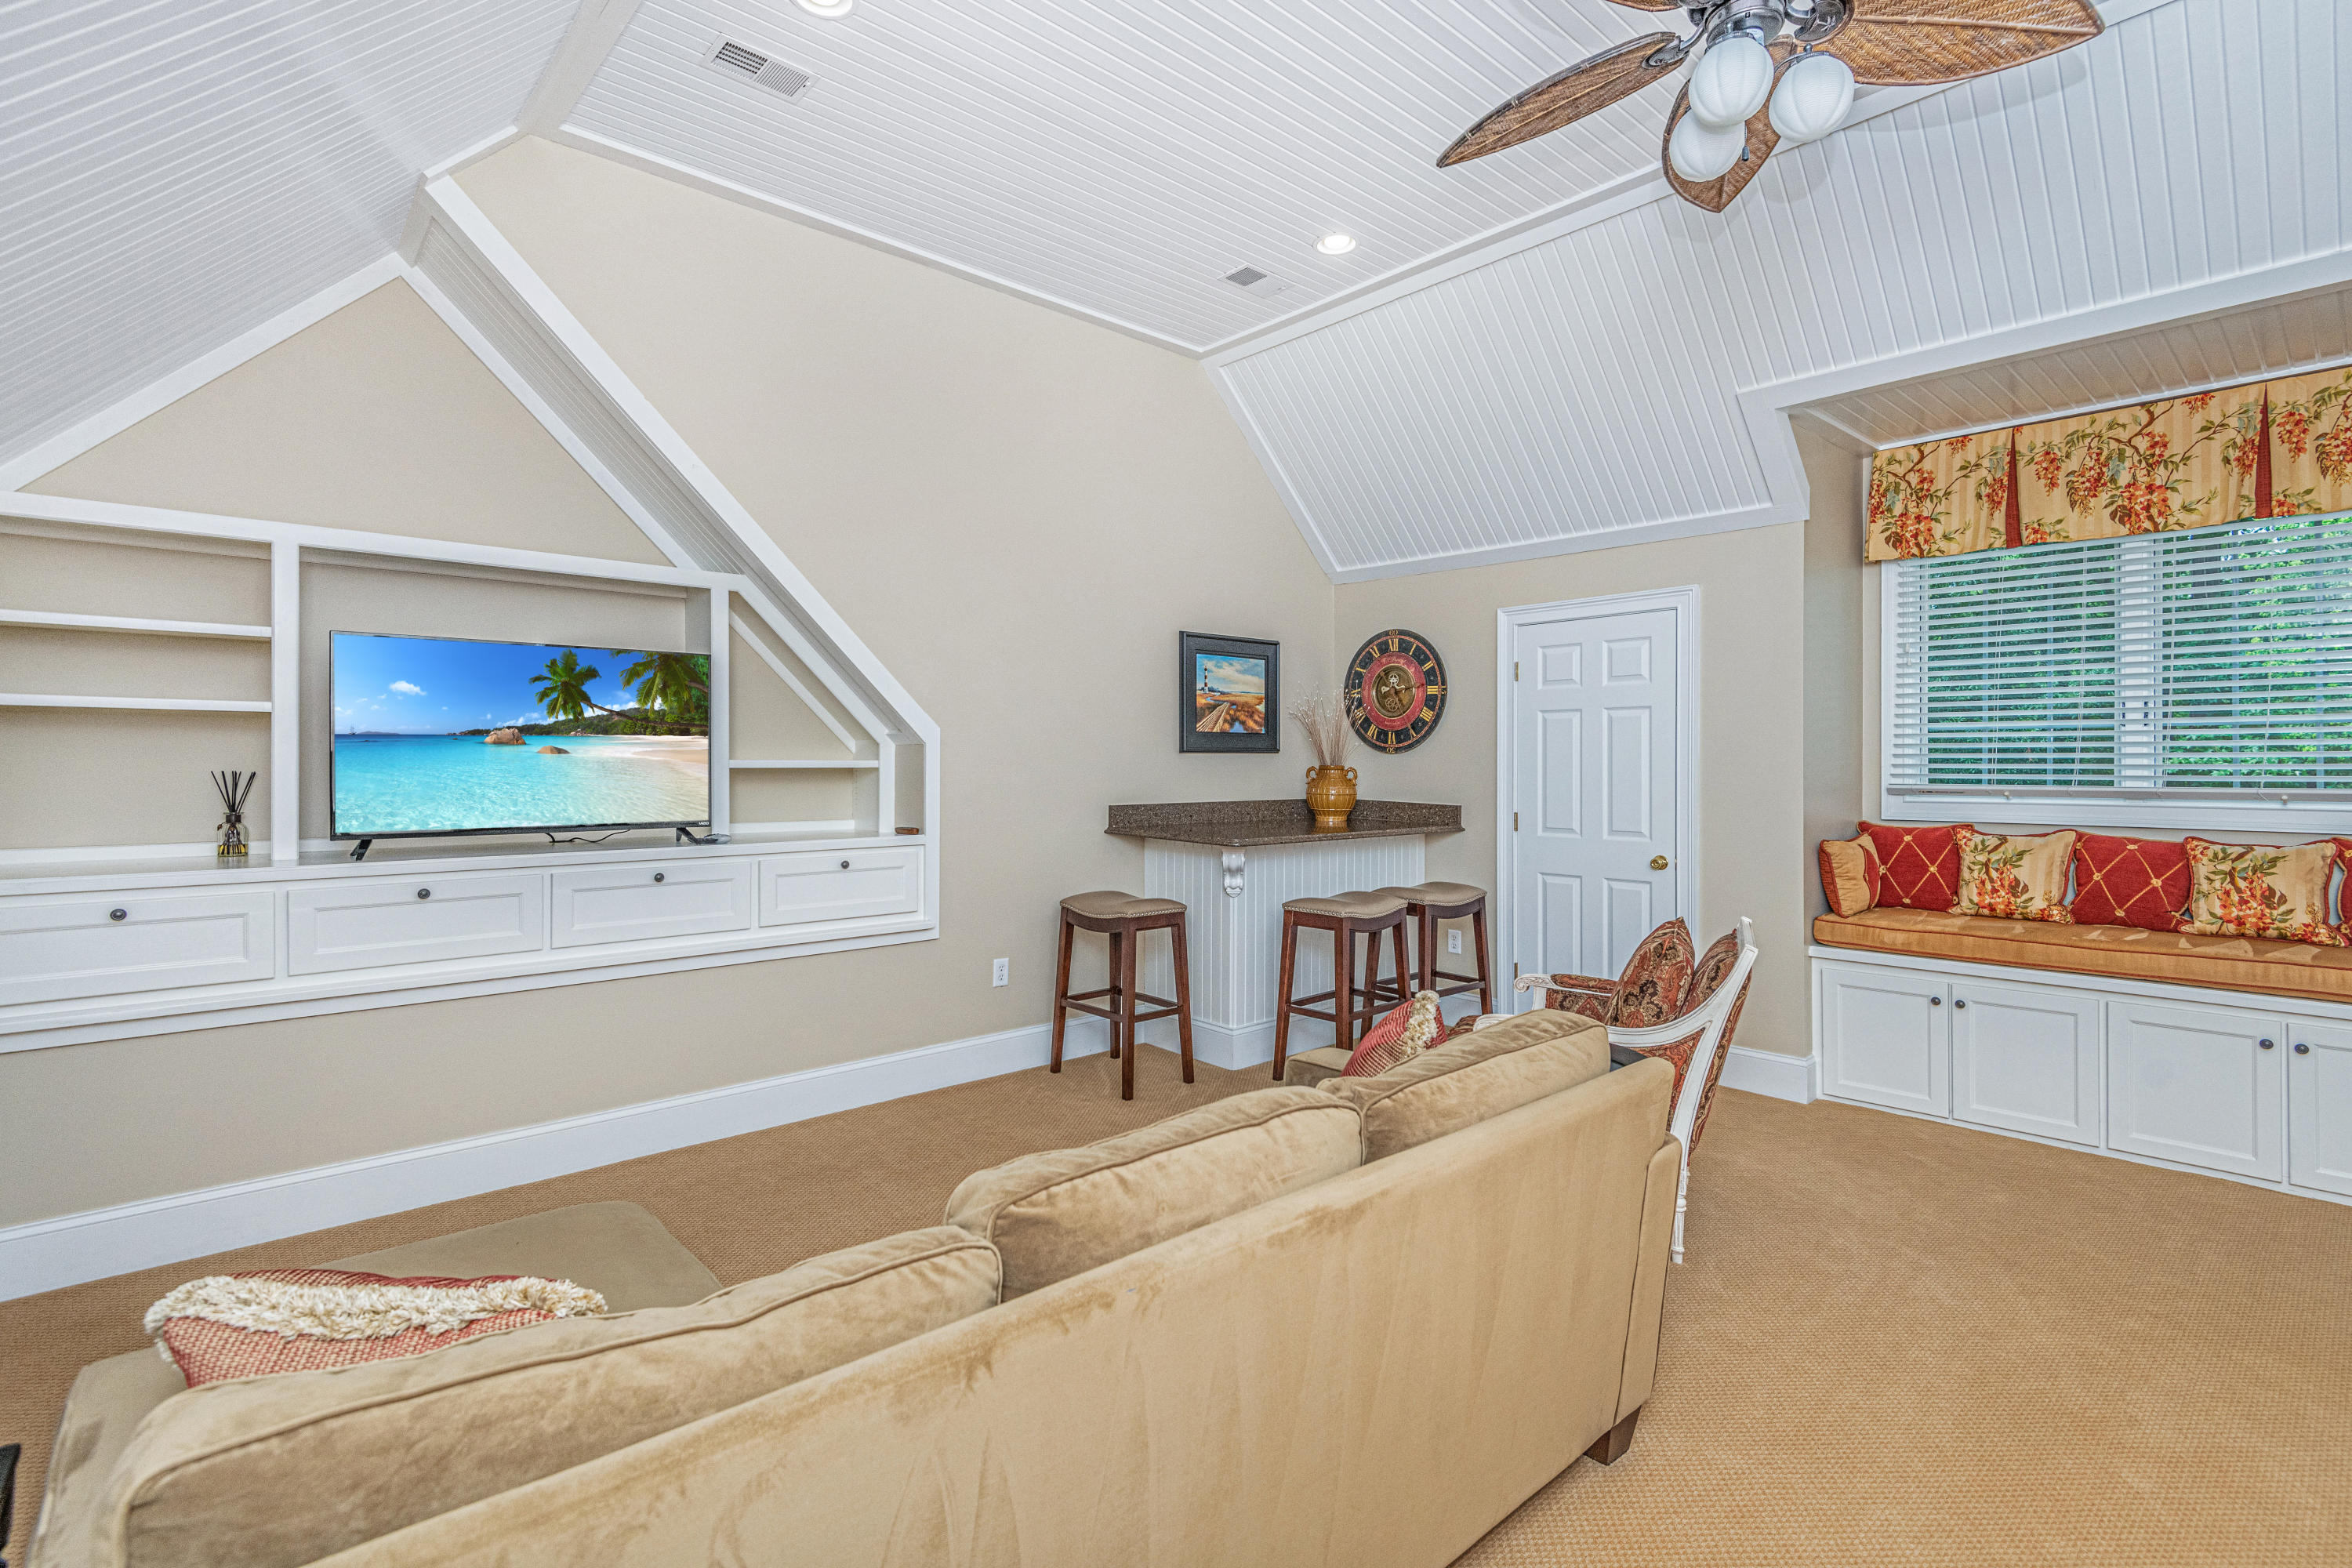 Dunes West Homes For Sale - 1837 Shell Ring, Mount Pleasant, SC - 5